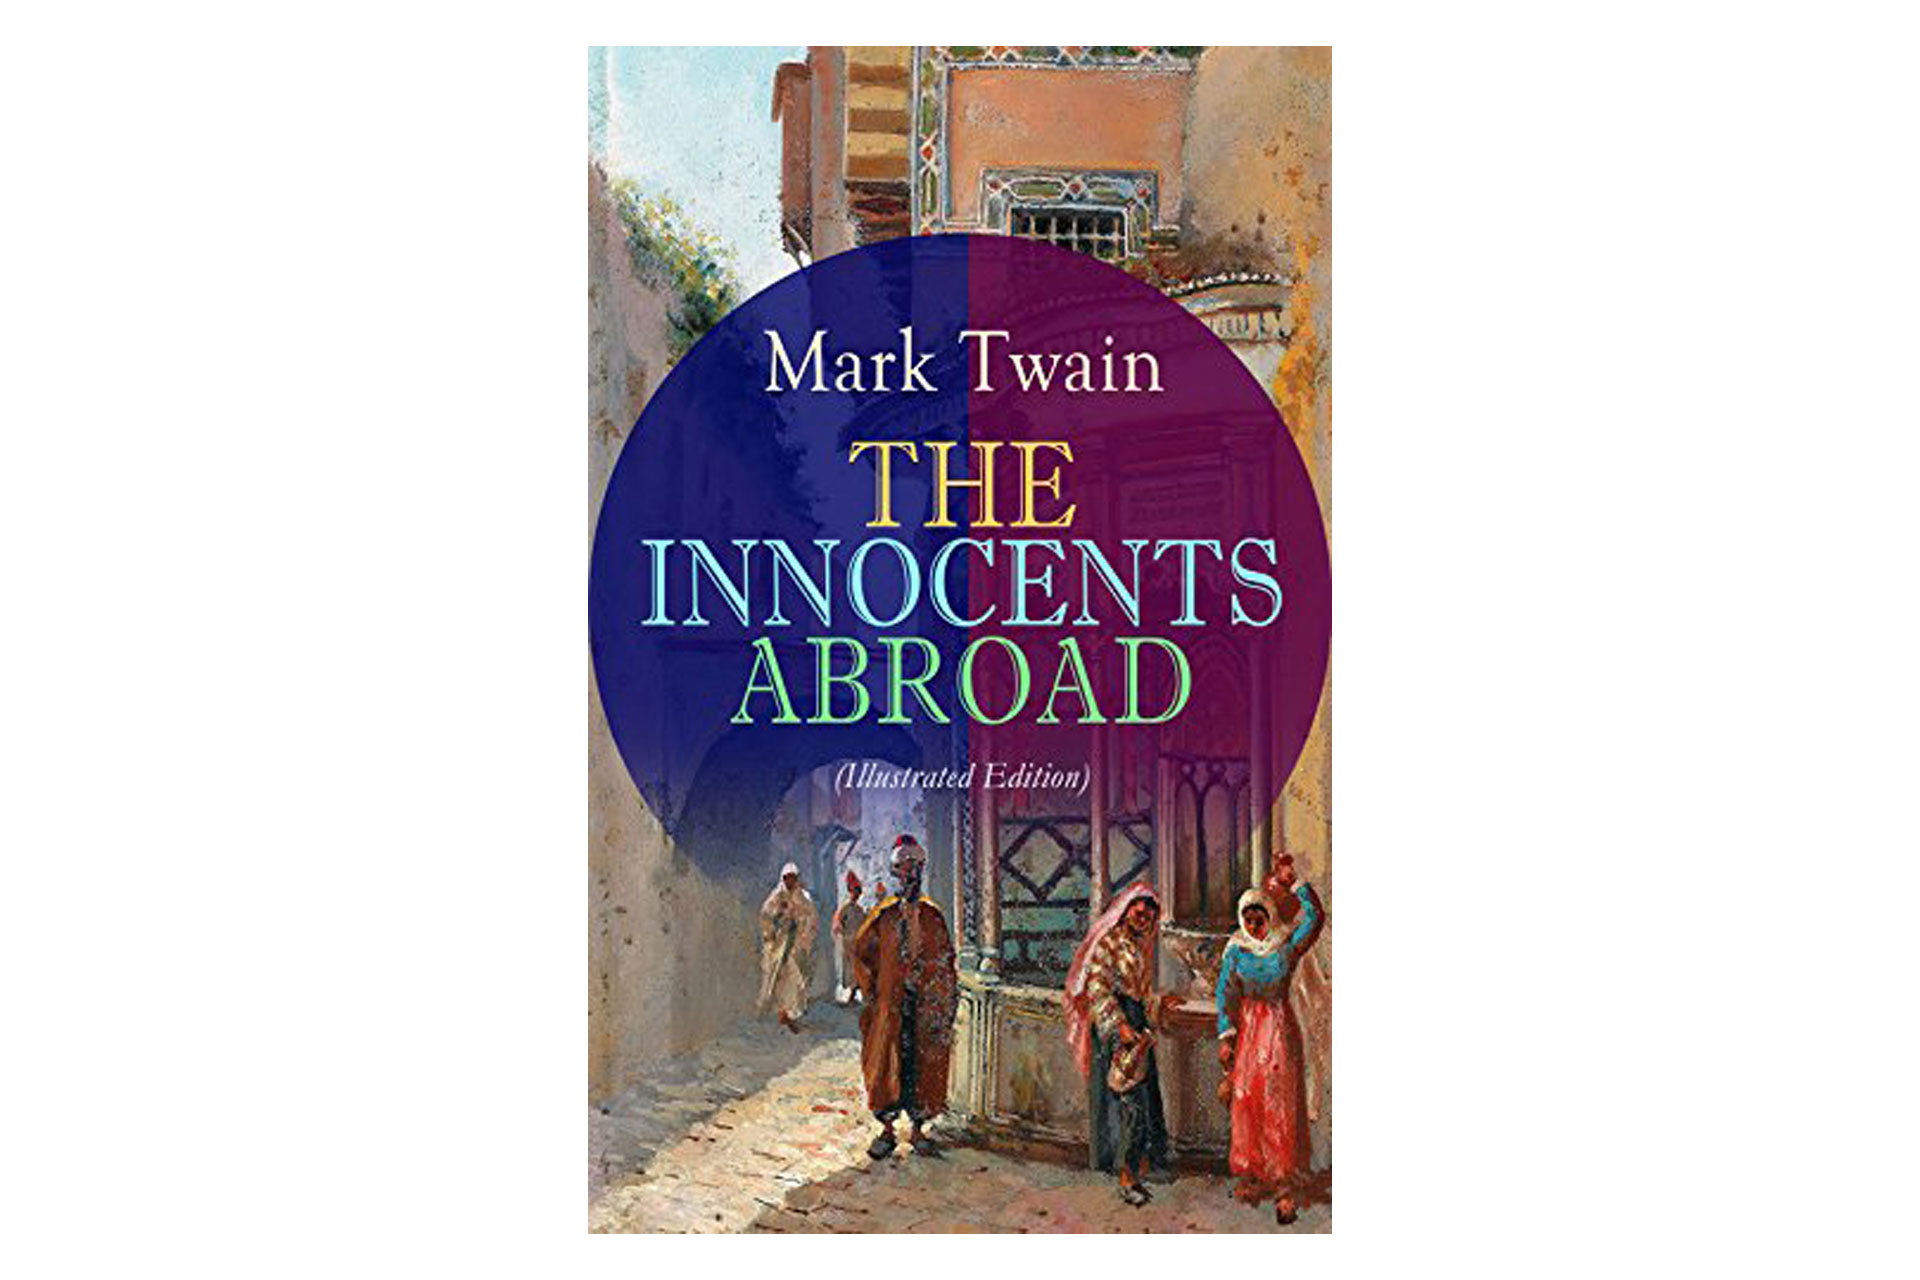 Innocents Abroad Book; Courtesy of Amazon